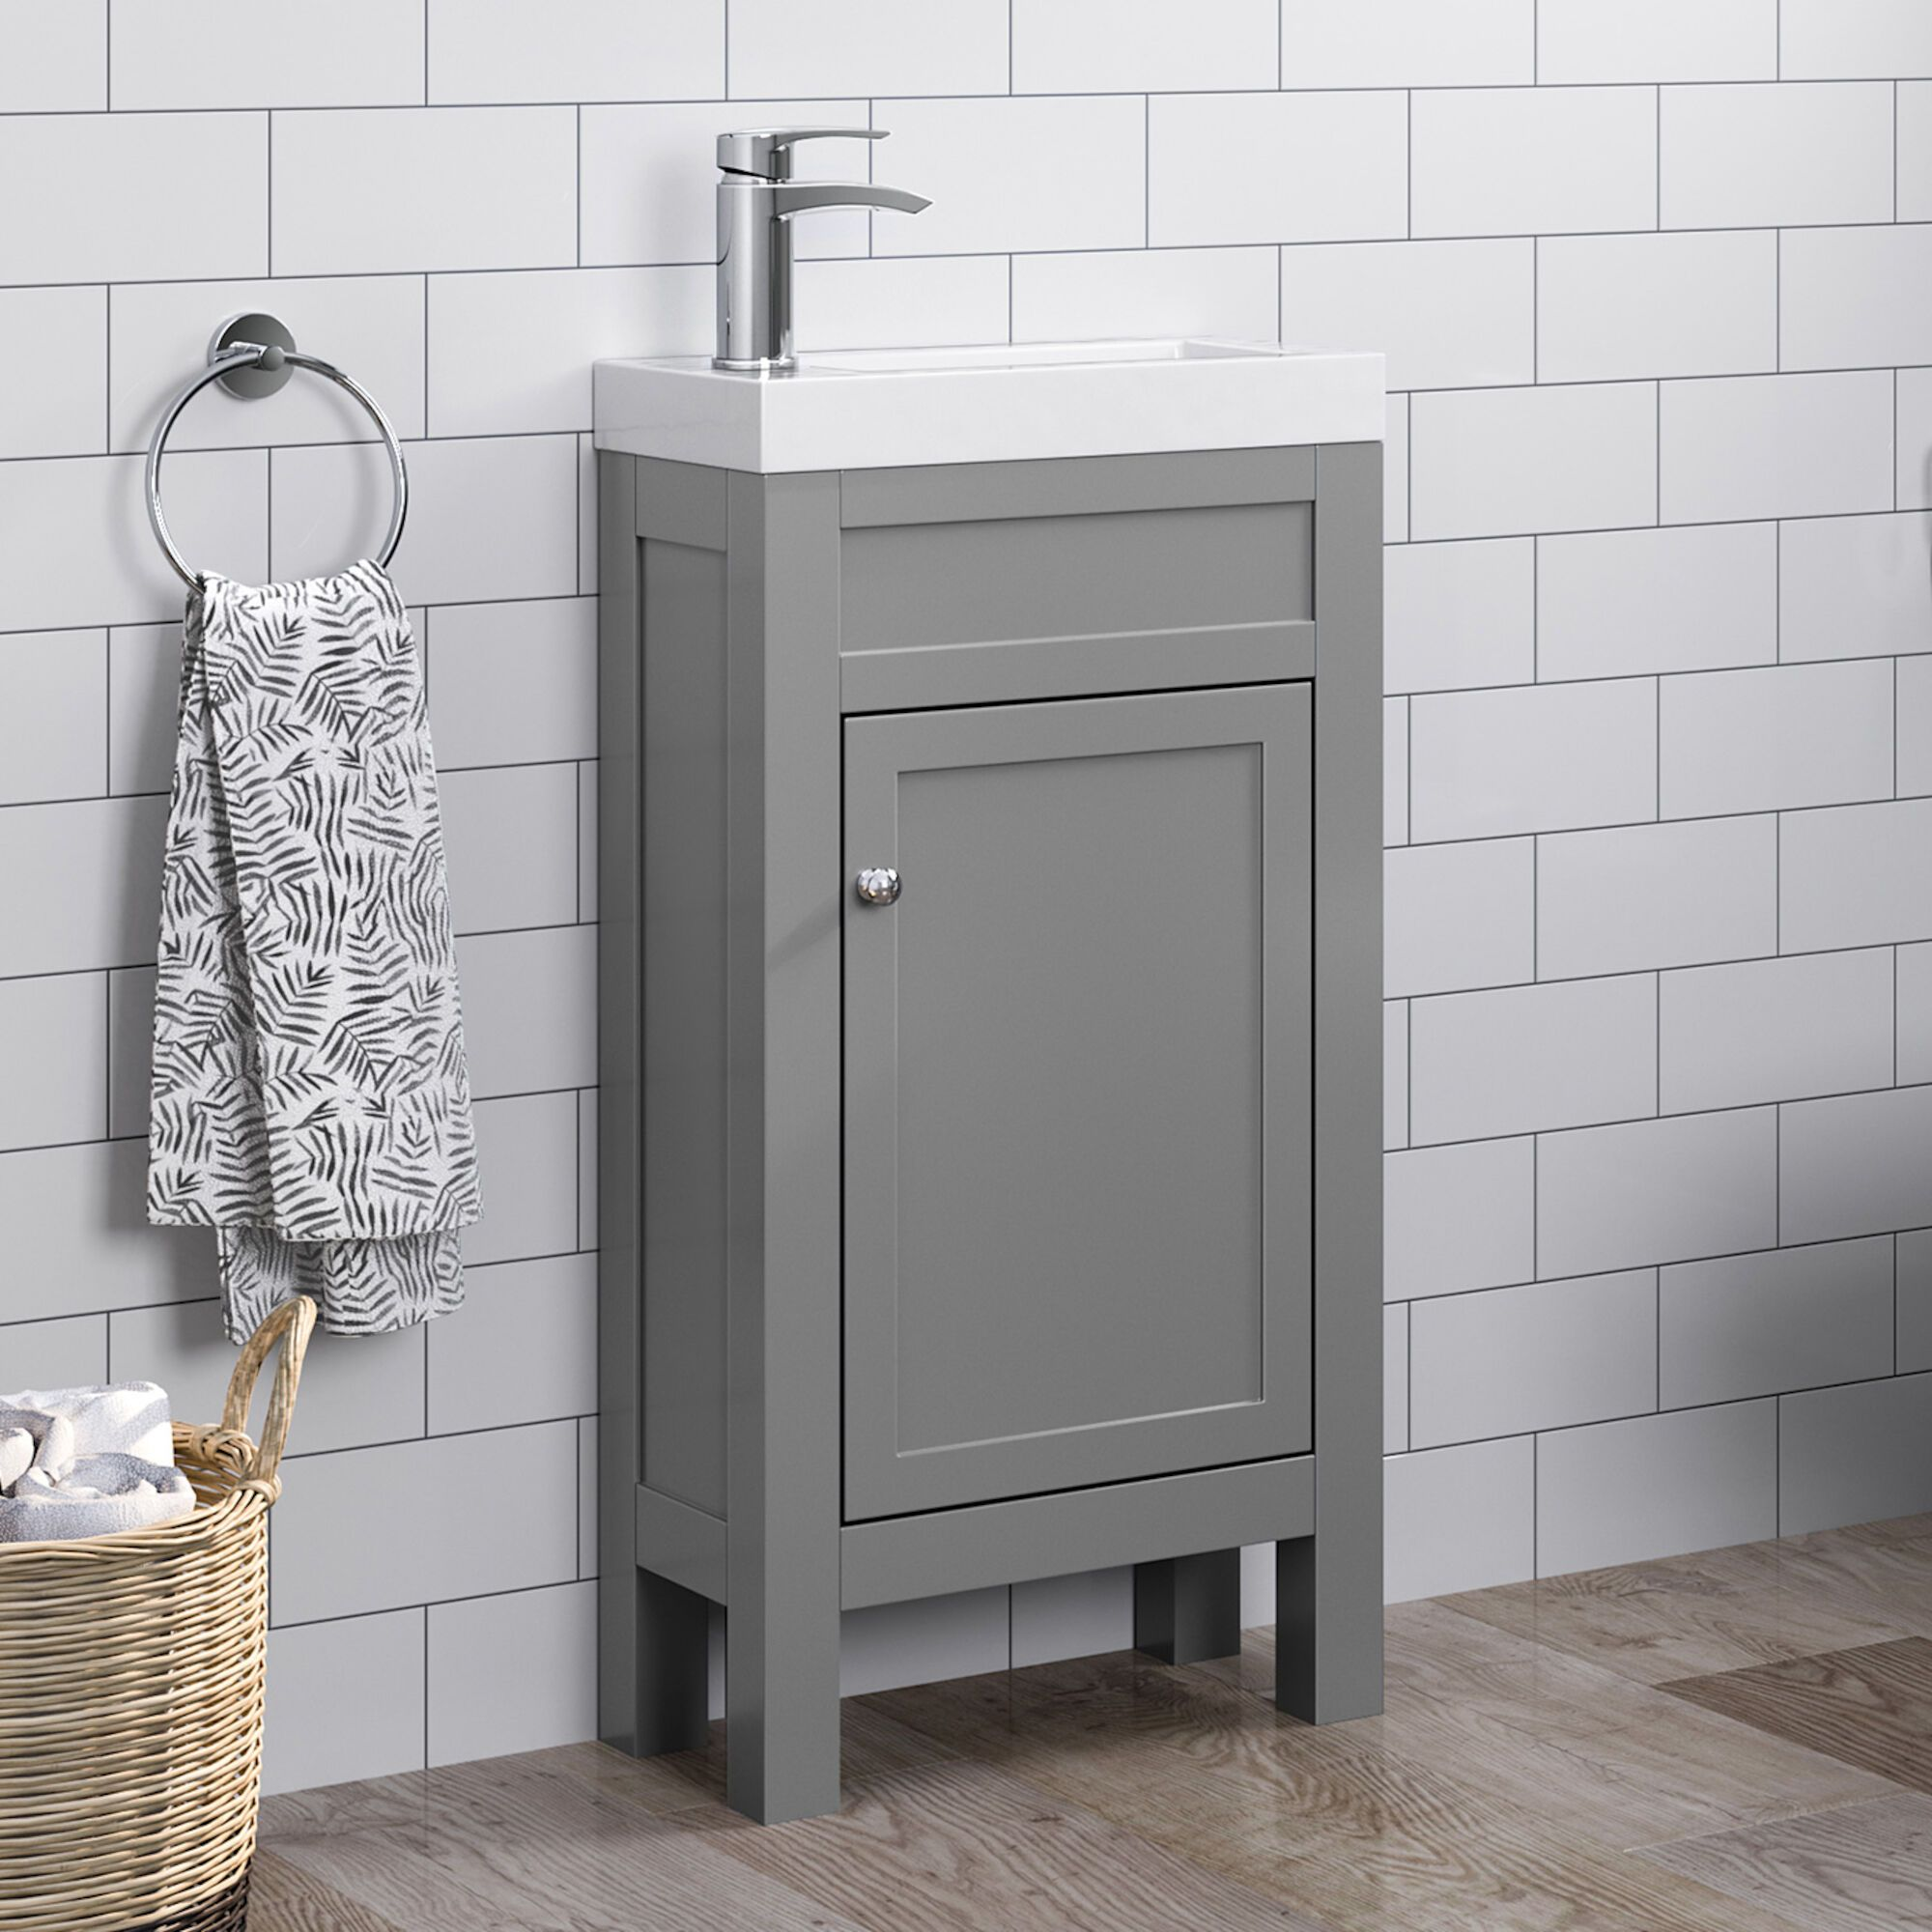 Grey Slimline Sink Vanity Unit Small Bathroom Storage Soak Com Vanity Units Sink Vanity Unit Small Bathroom Storage